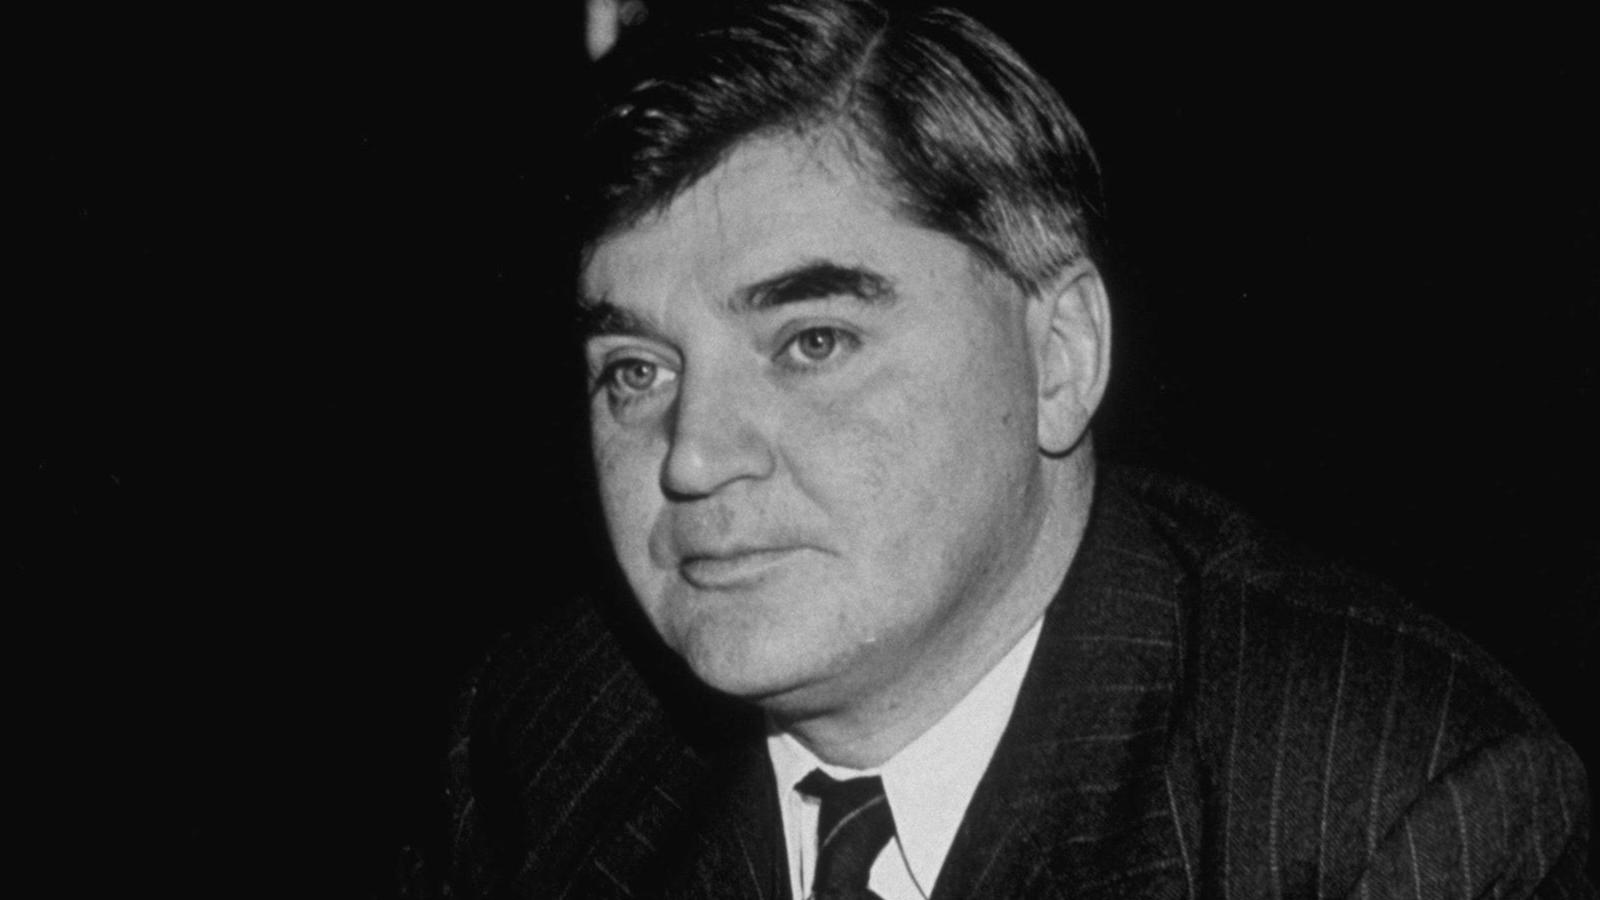 Aneurin Bevan fought for the principle of free healthcare at the point of delivery based on need, not wealth, Image: Getty